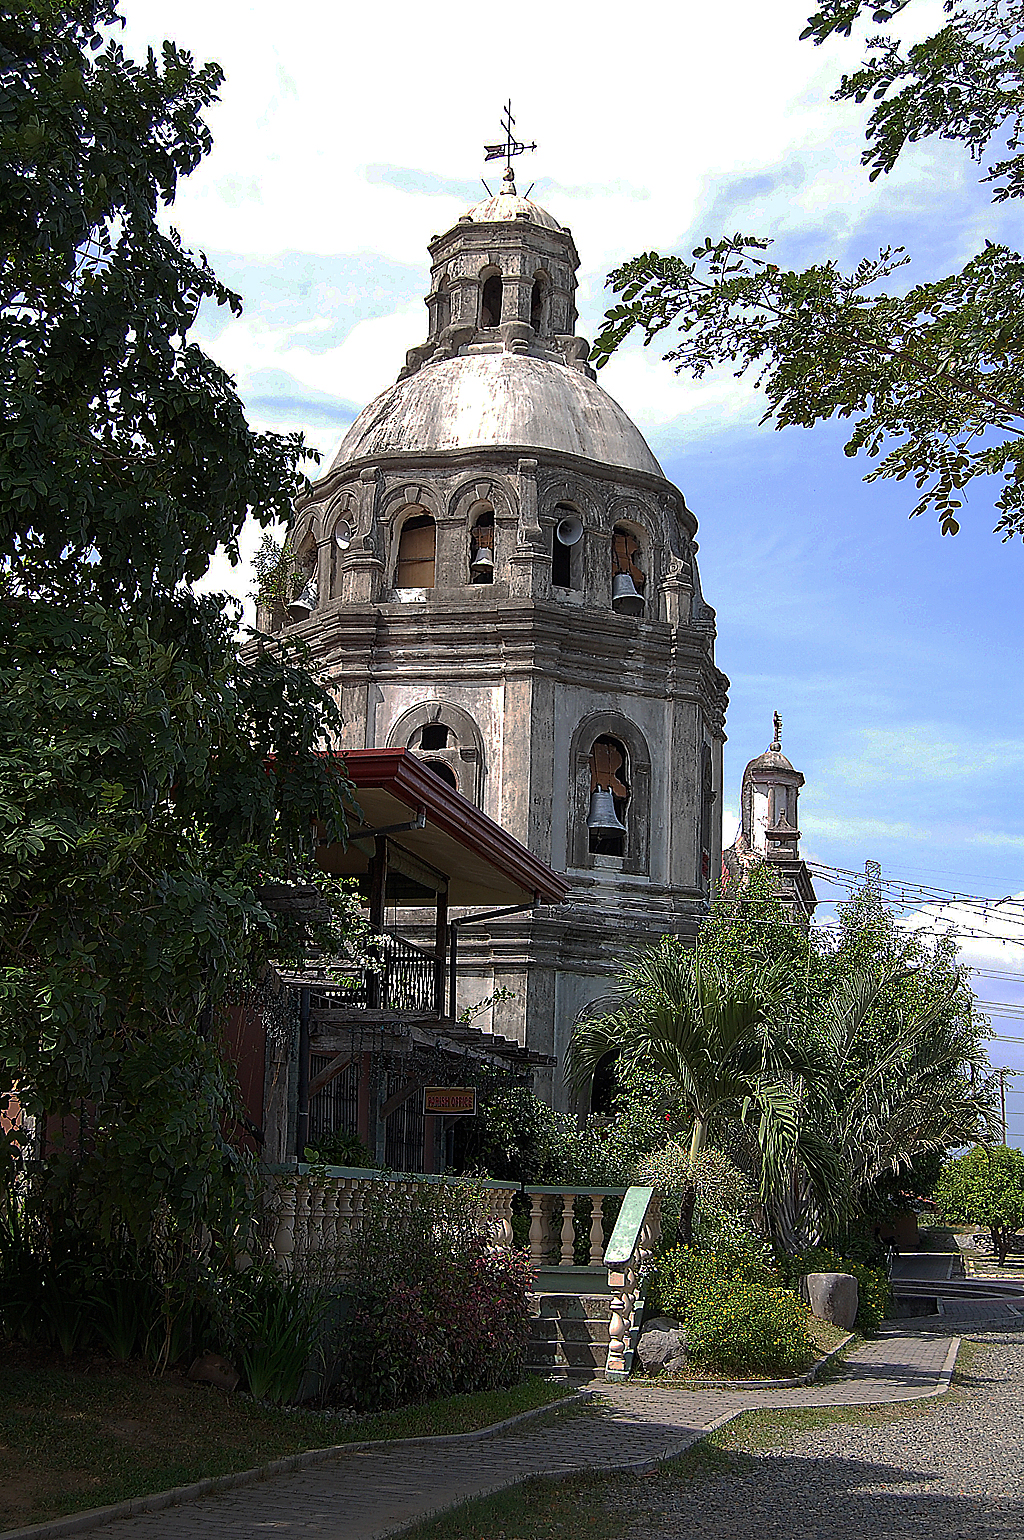 The Bell Tower of San Guillermo Parish Church The first church was built on this site in 1576 with the establishment of Pueblo of Bacolor. Present church was built in 1764.